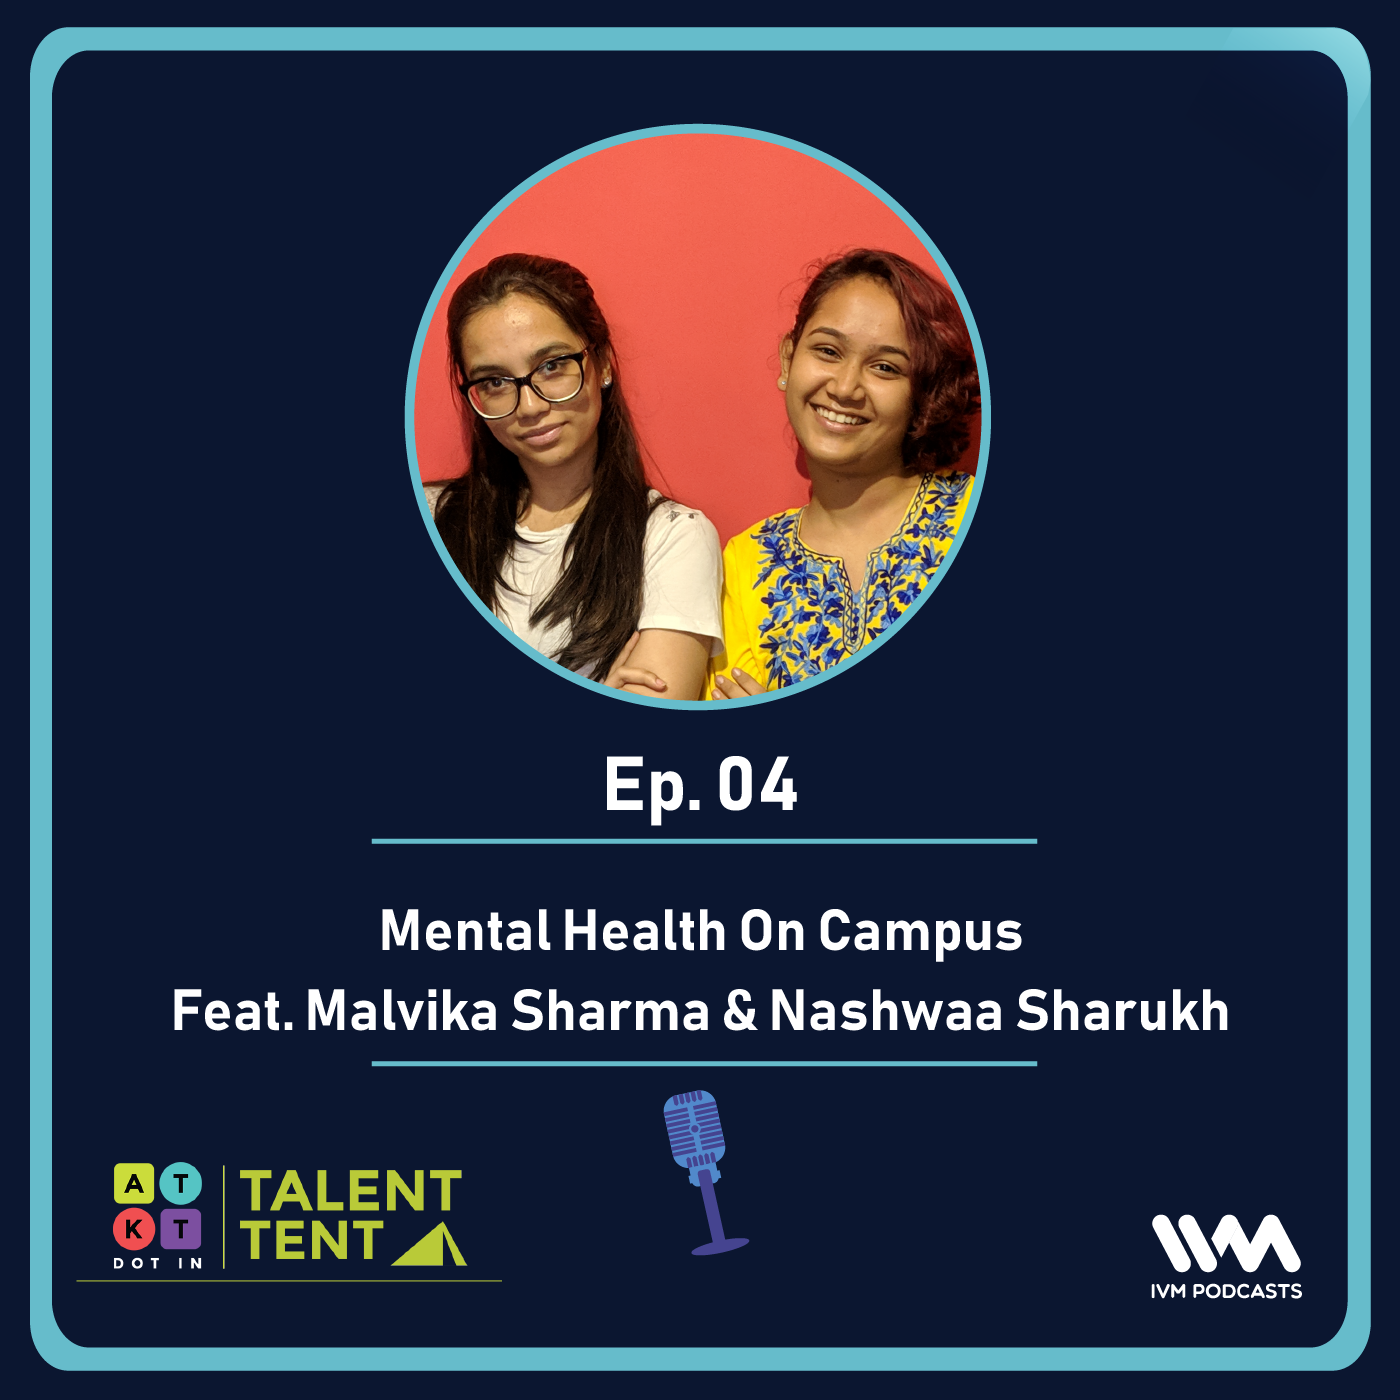 Ep. 04: Mental Health On Campus Feat. Malvika & Nashwaa